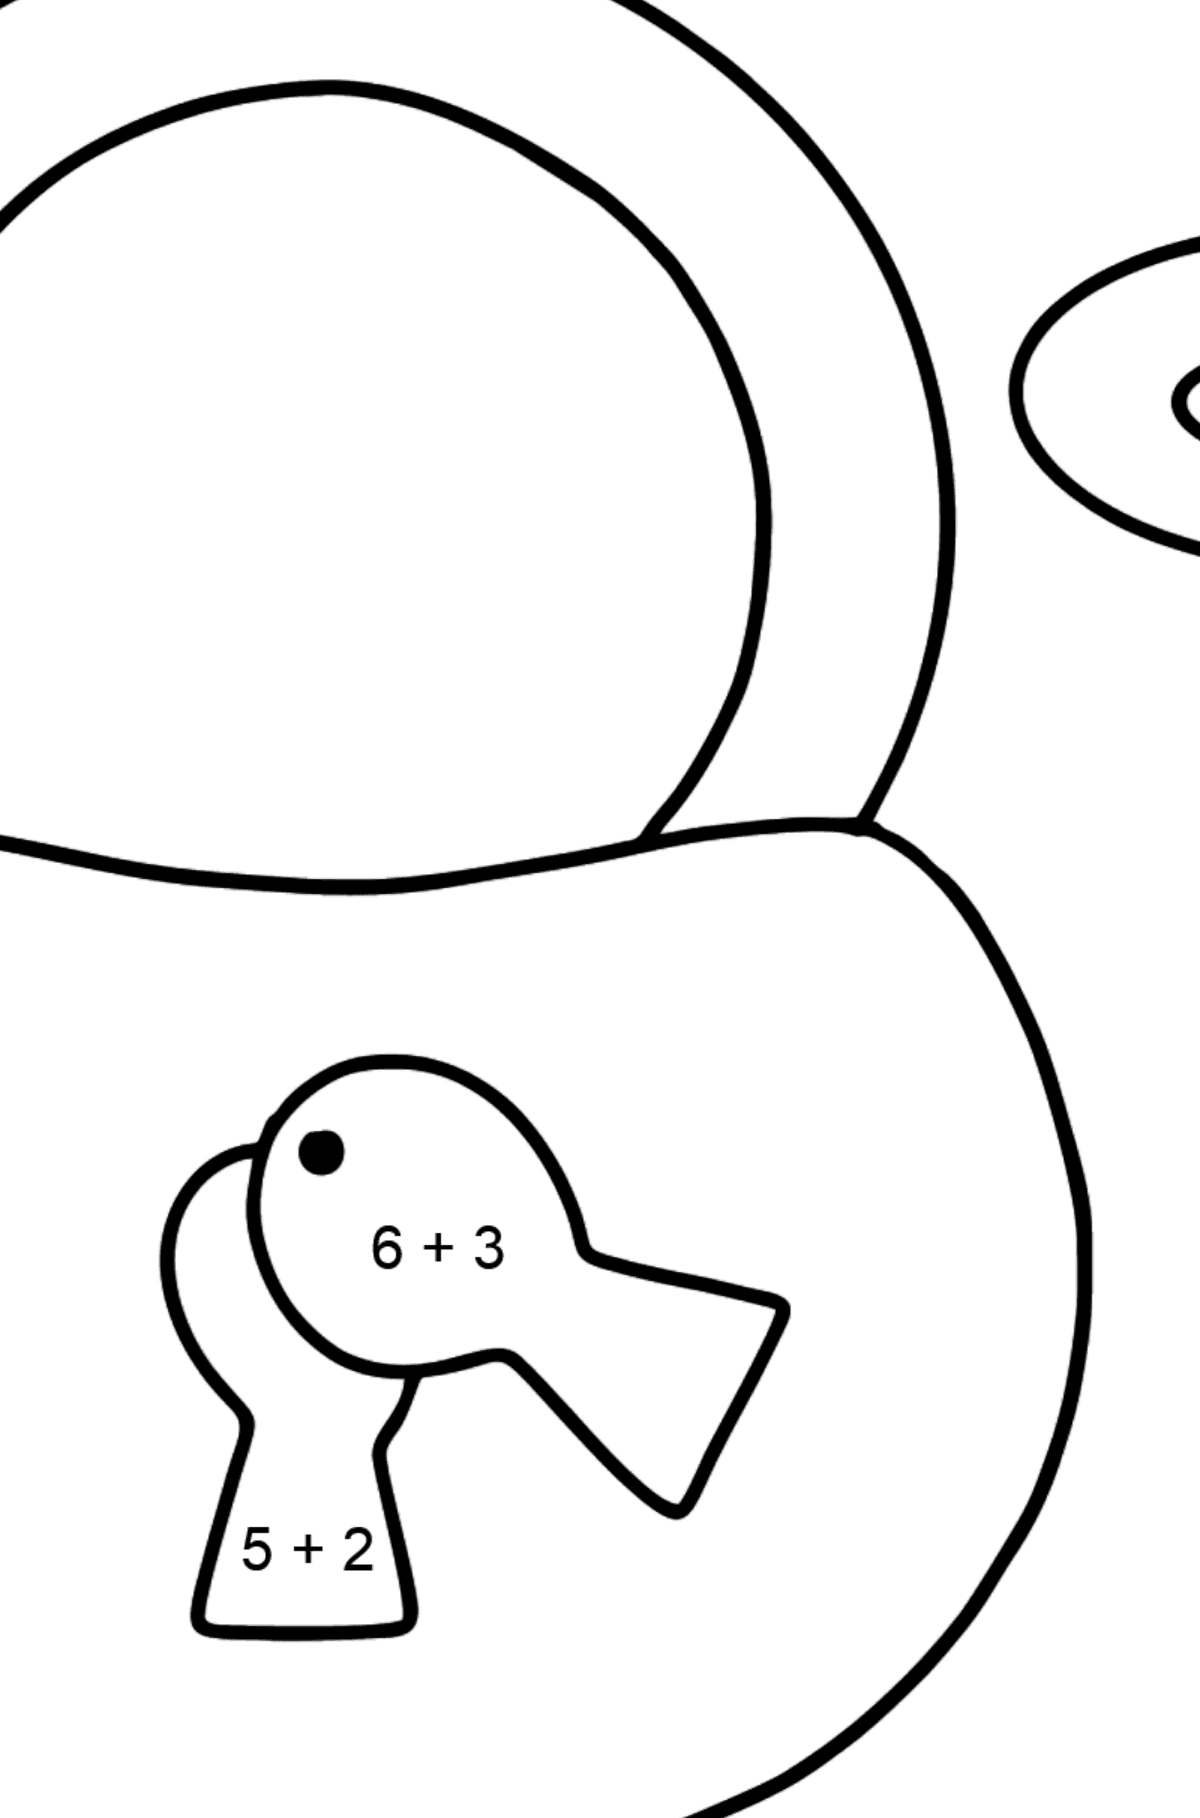 Lock and Key coloring page - Math Coloring - Addition for Kids